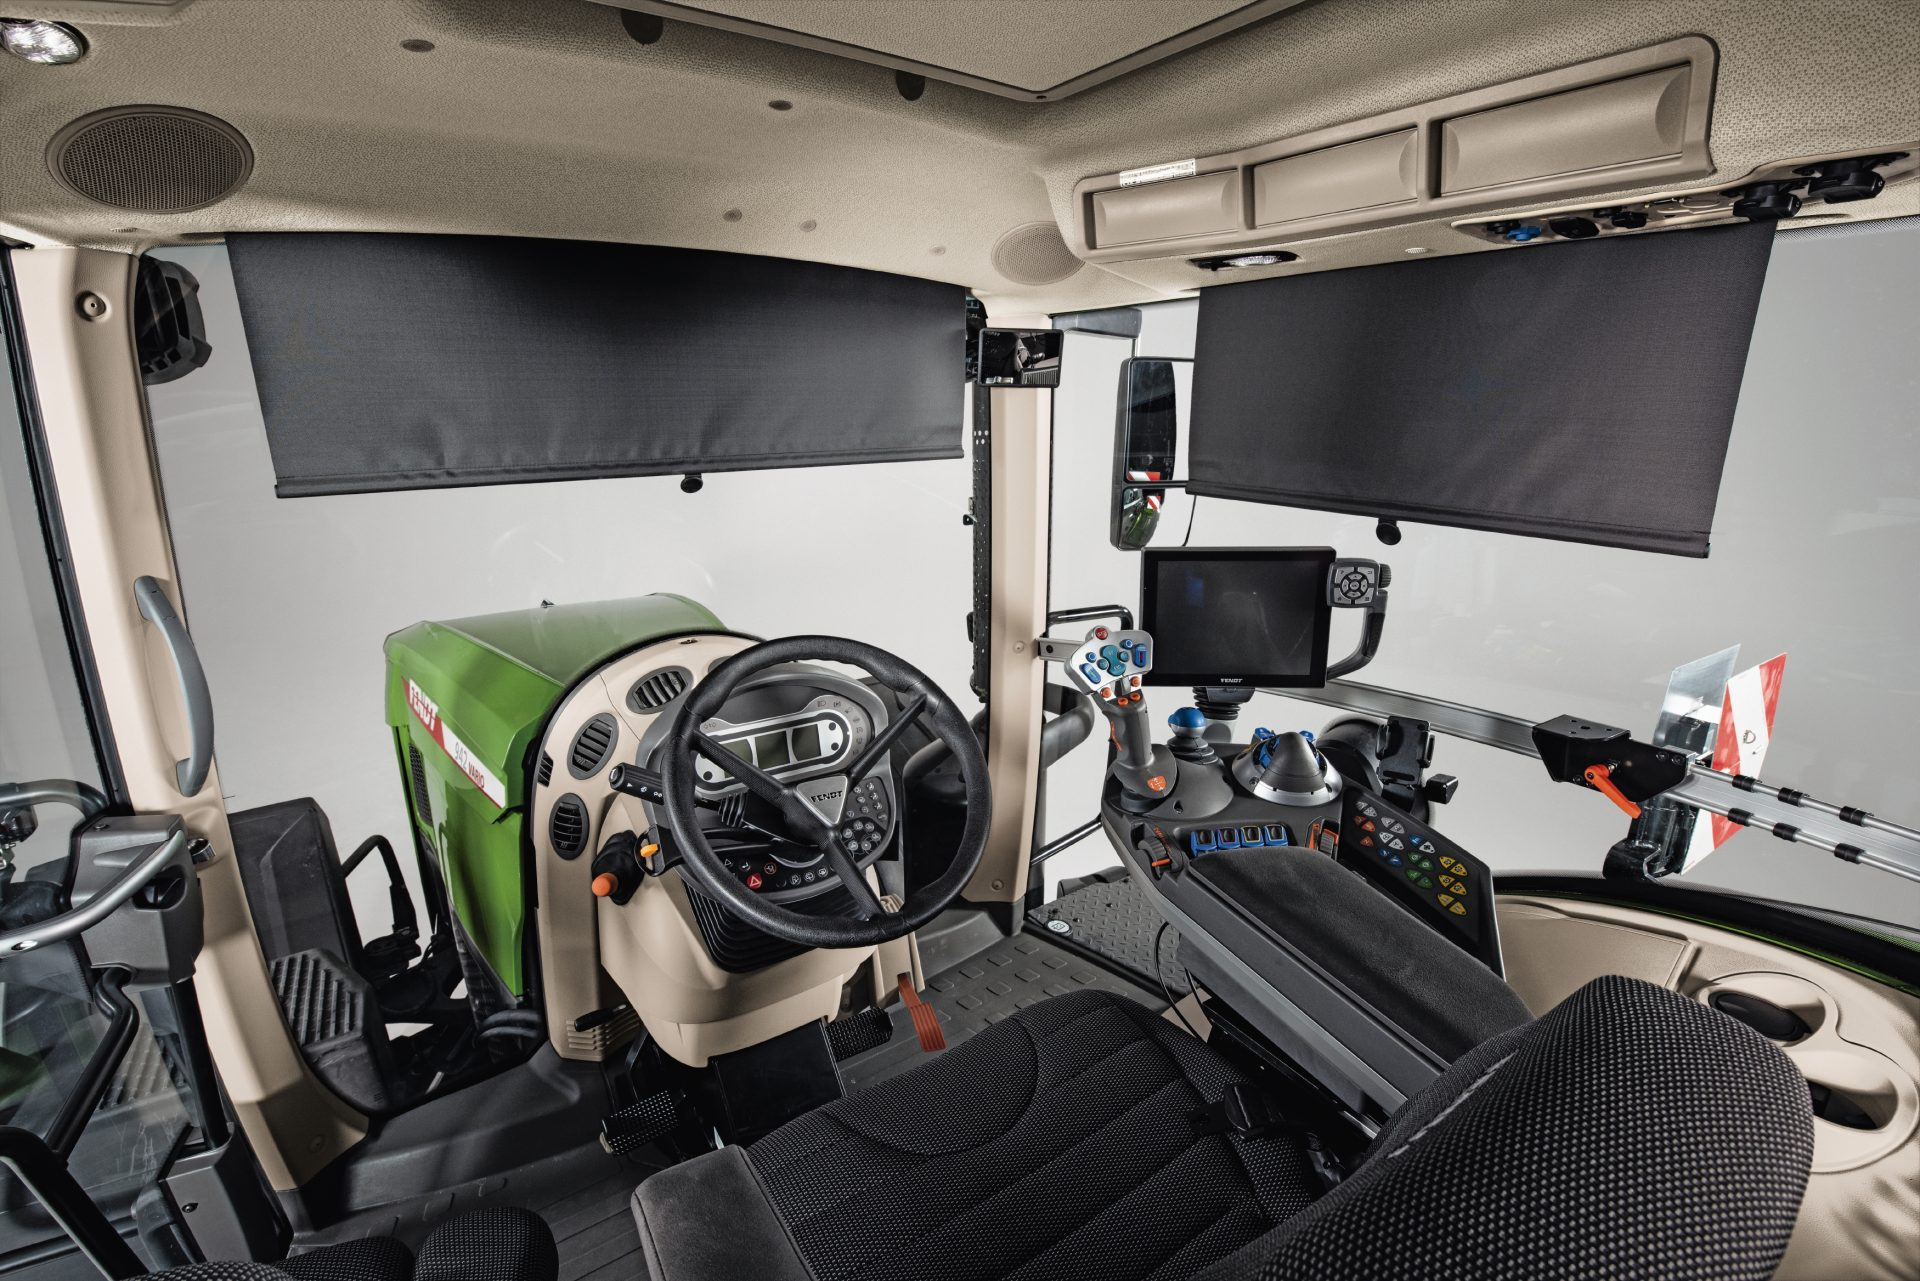 Interior cabina Fendt 936 Vario Power